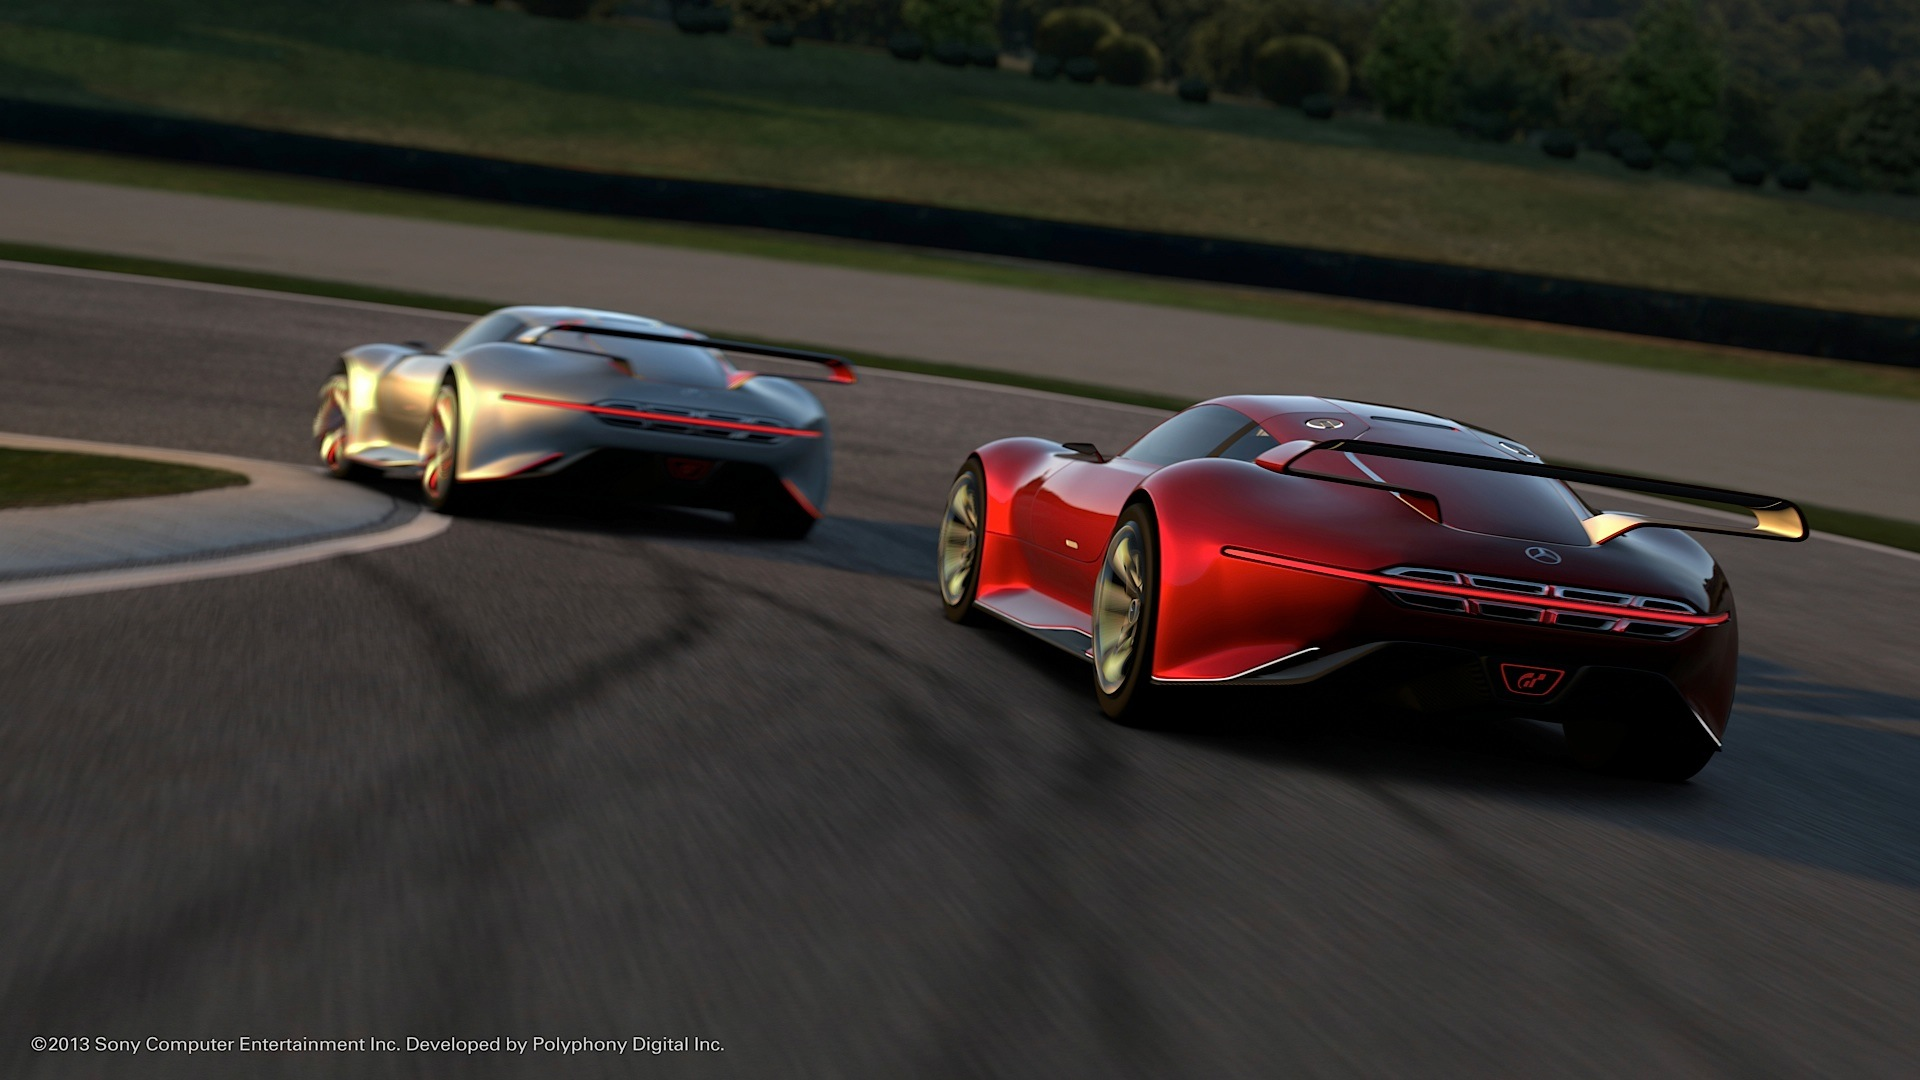 MercedesBenz Design Manager Gives Interview About AMG